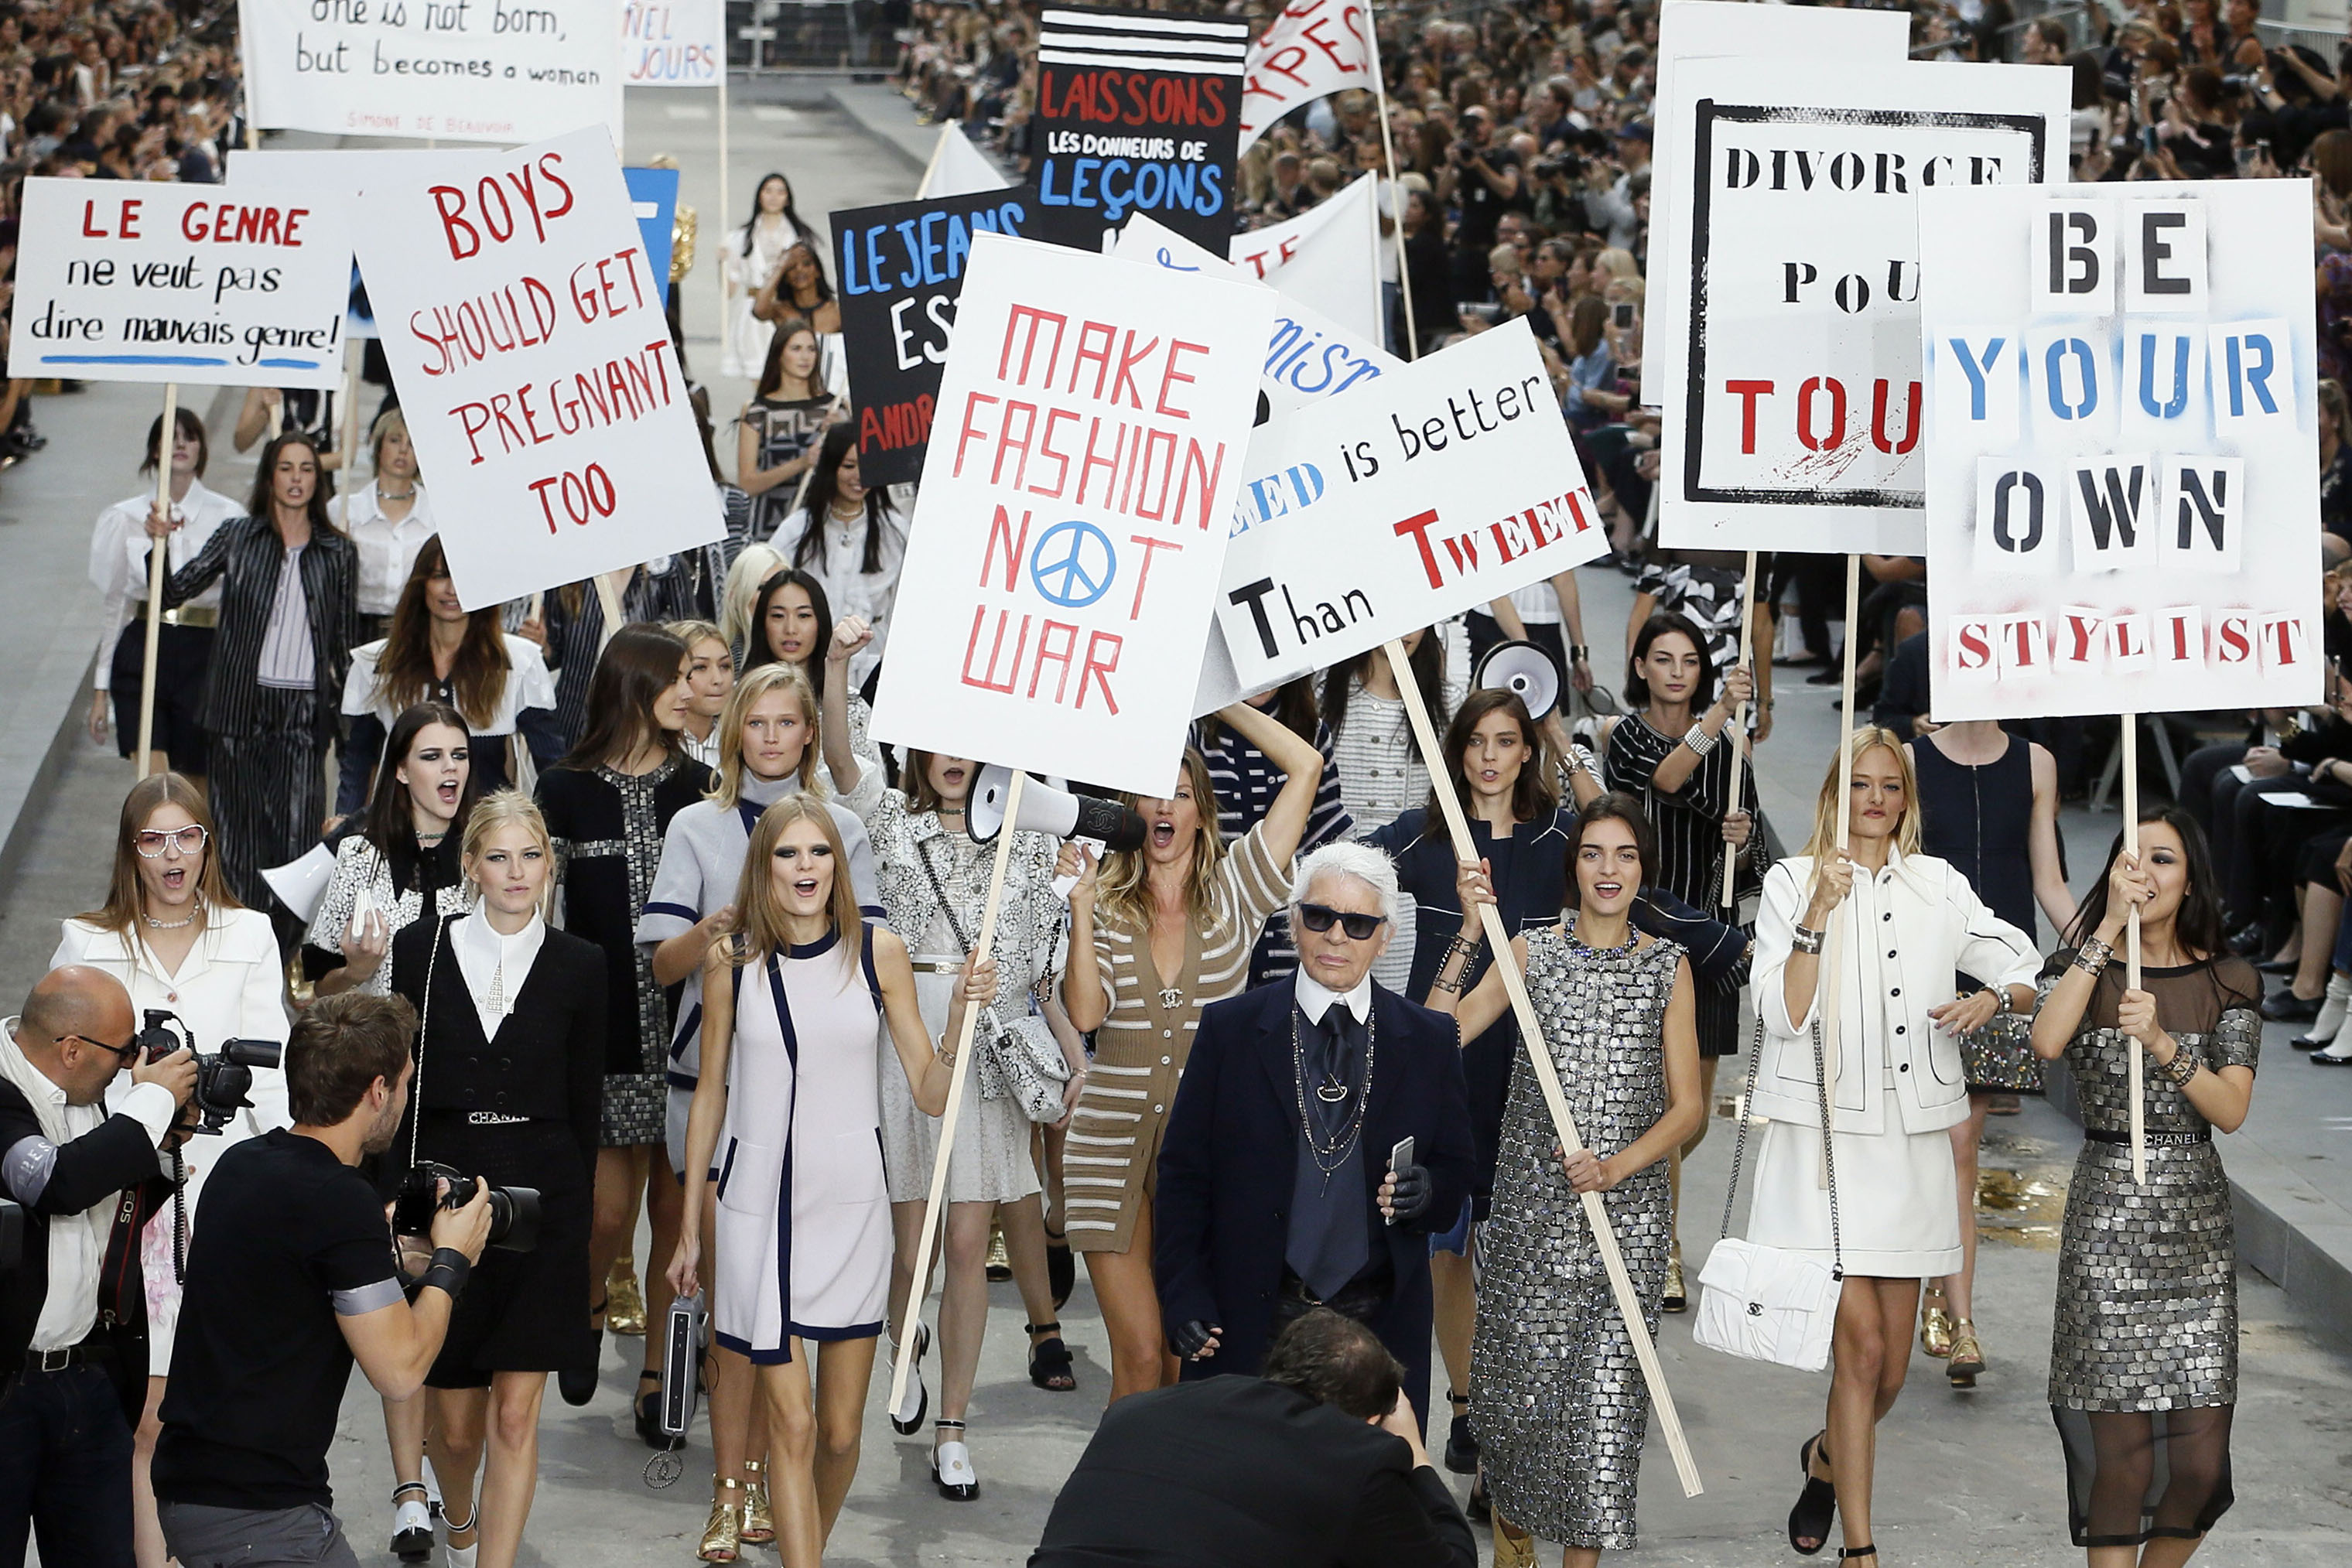 German fashion designer Karl Lagerfeld (C) acknowledges the public as Brazilian model Gisele Bundchen (back-C) speaks through a megaphone as she and other models fake a demonstration as they present creations for Chanel's 2015 Spring/Summer fashion show, on Sept. 30, 2014 at the Grand Palais in Paris.